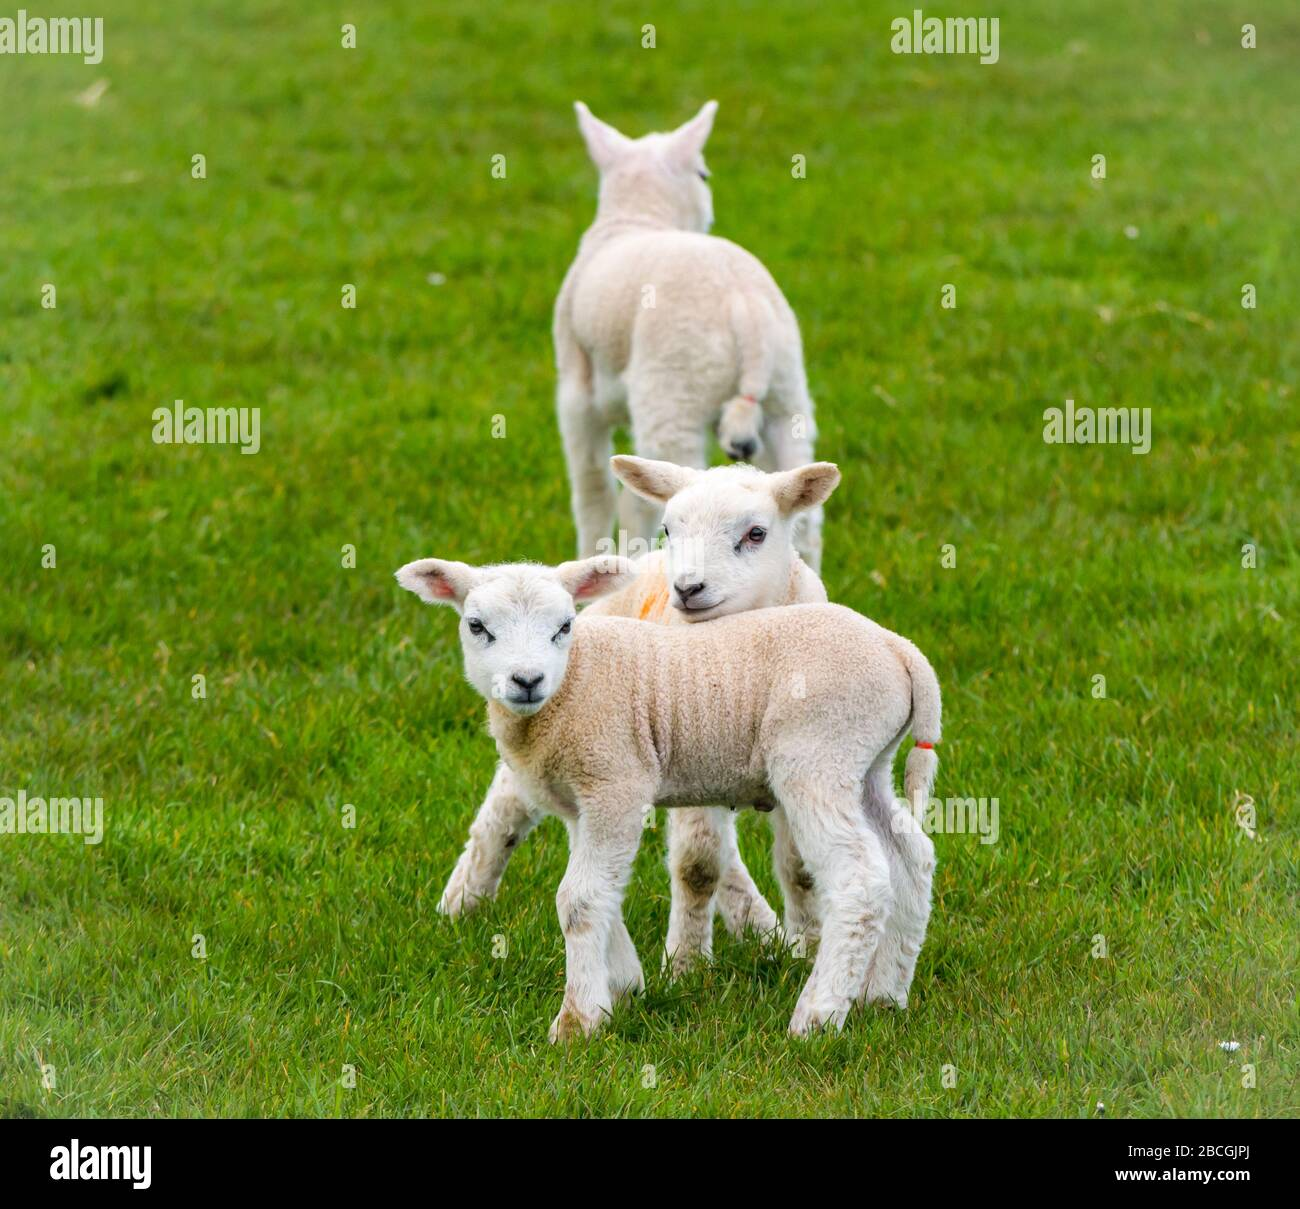 Close up of cute Spring lambs in grassy field, East Lothian, Scotland, UK Stock Photo